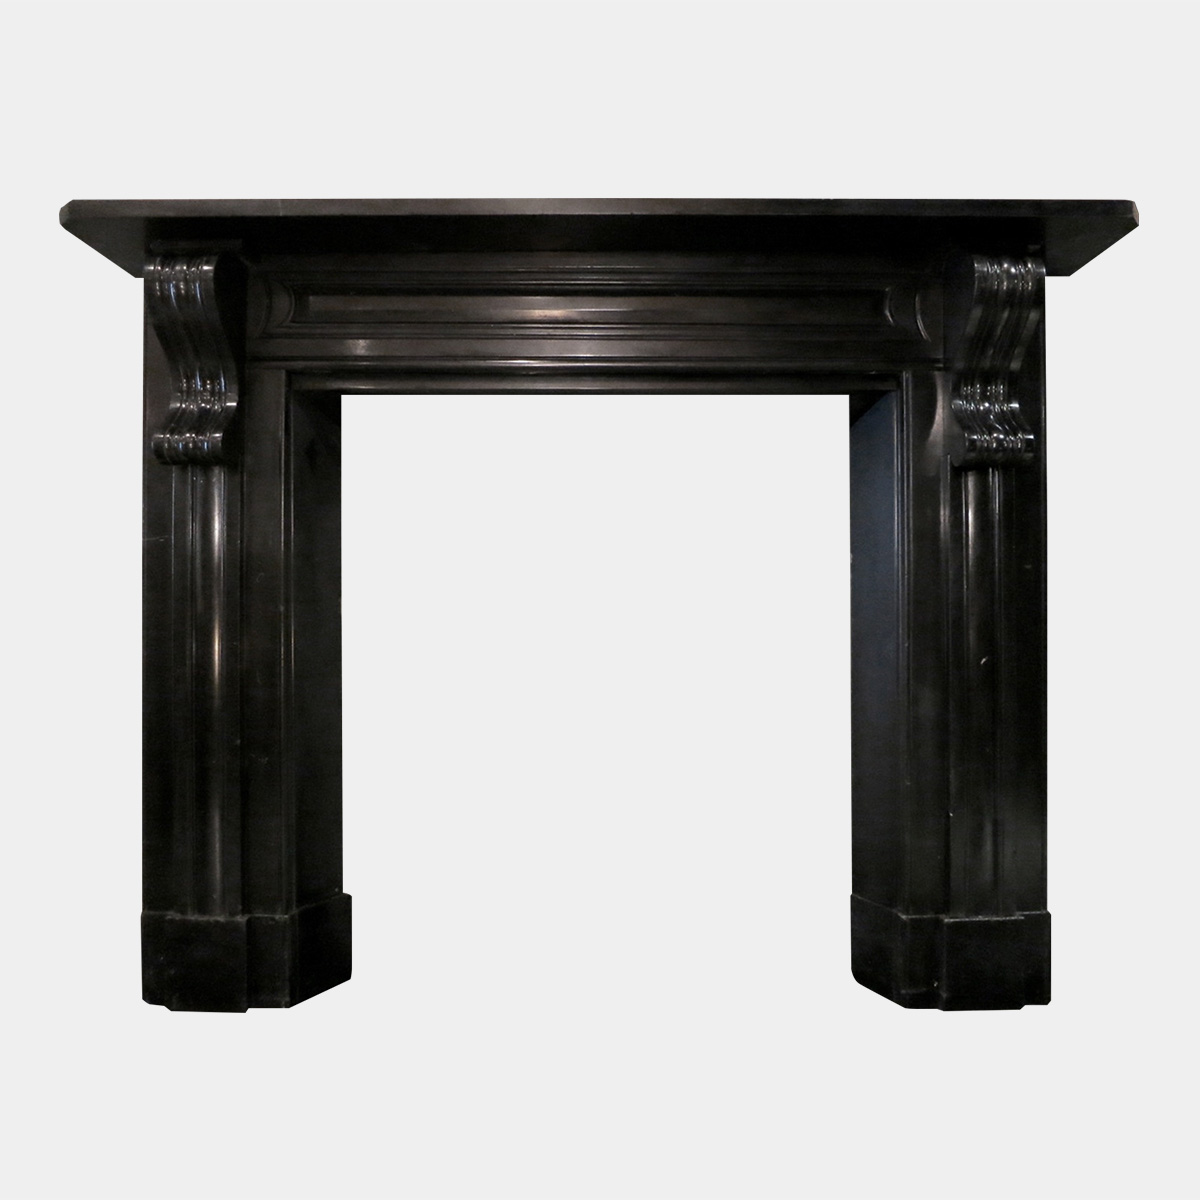 Antique Early 19th Century Irish Black Marble Fireplace Marmorea London